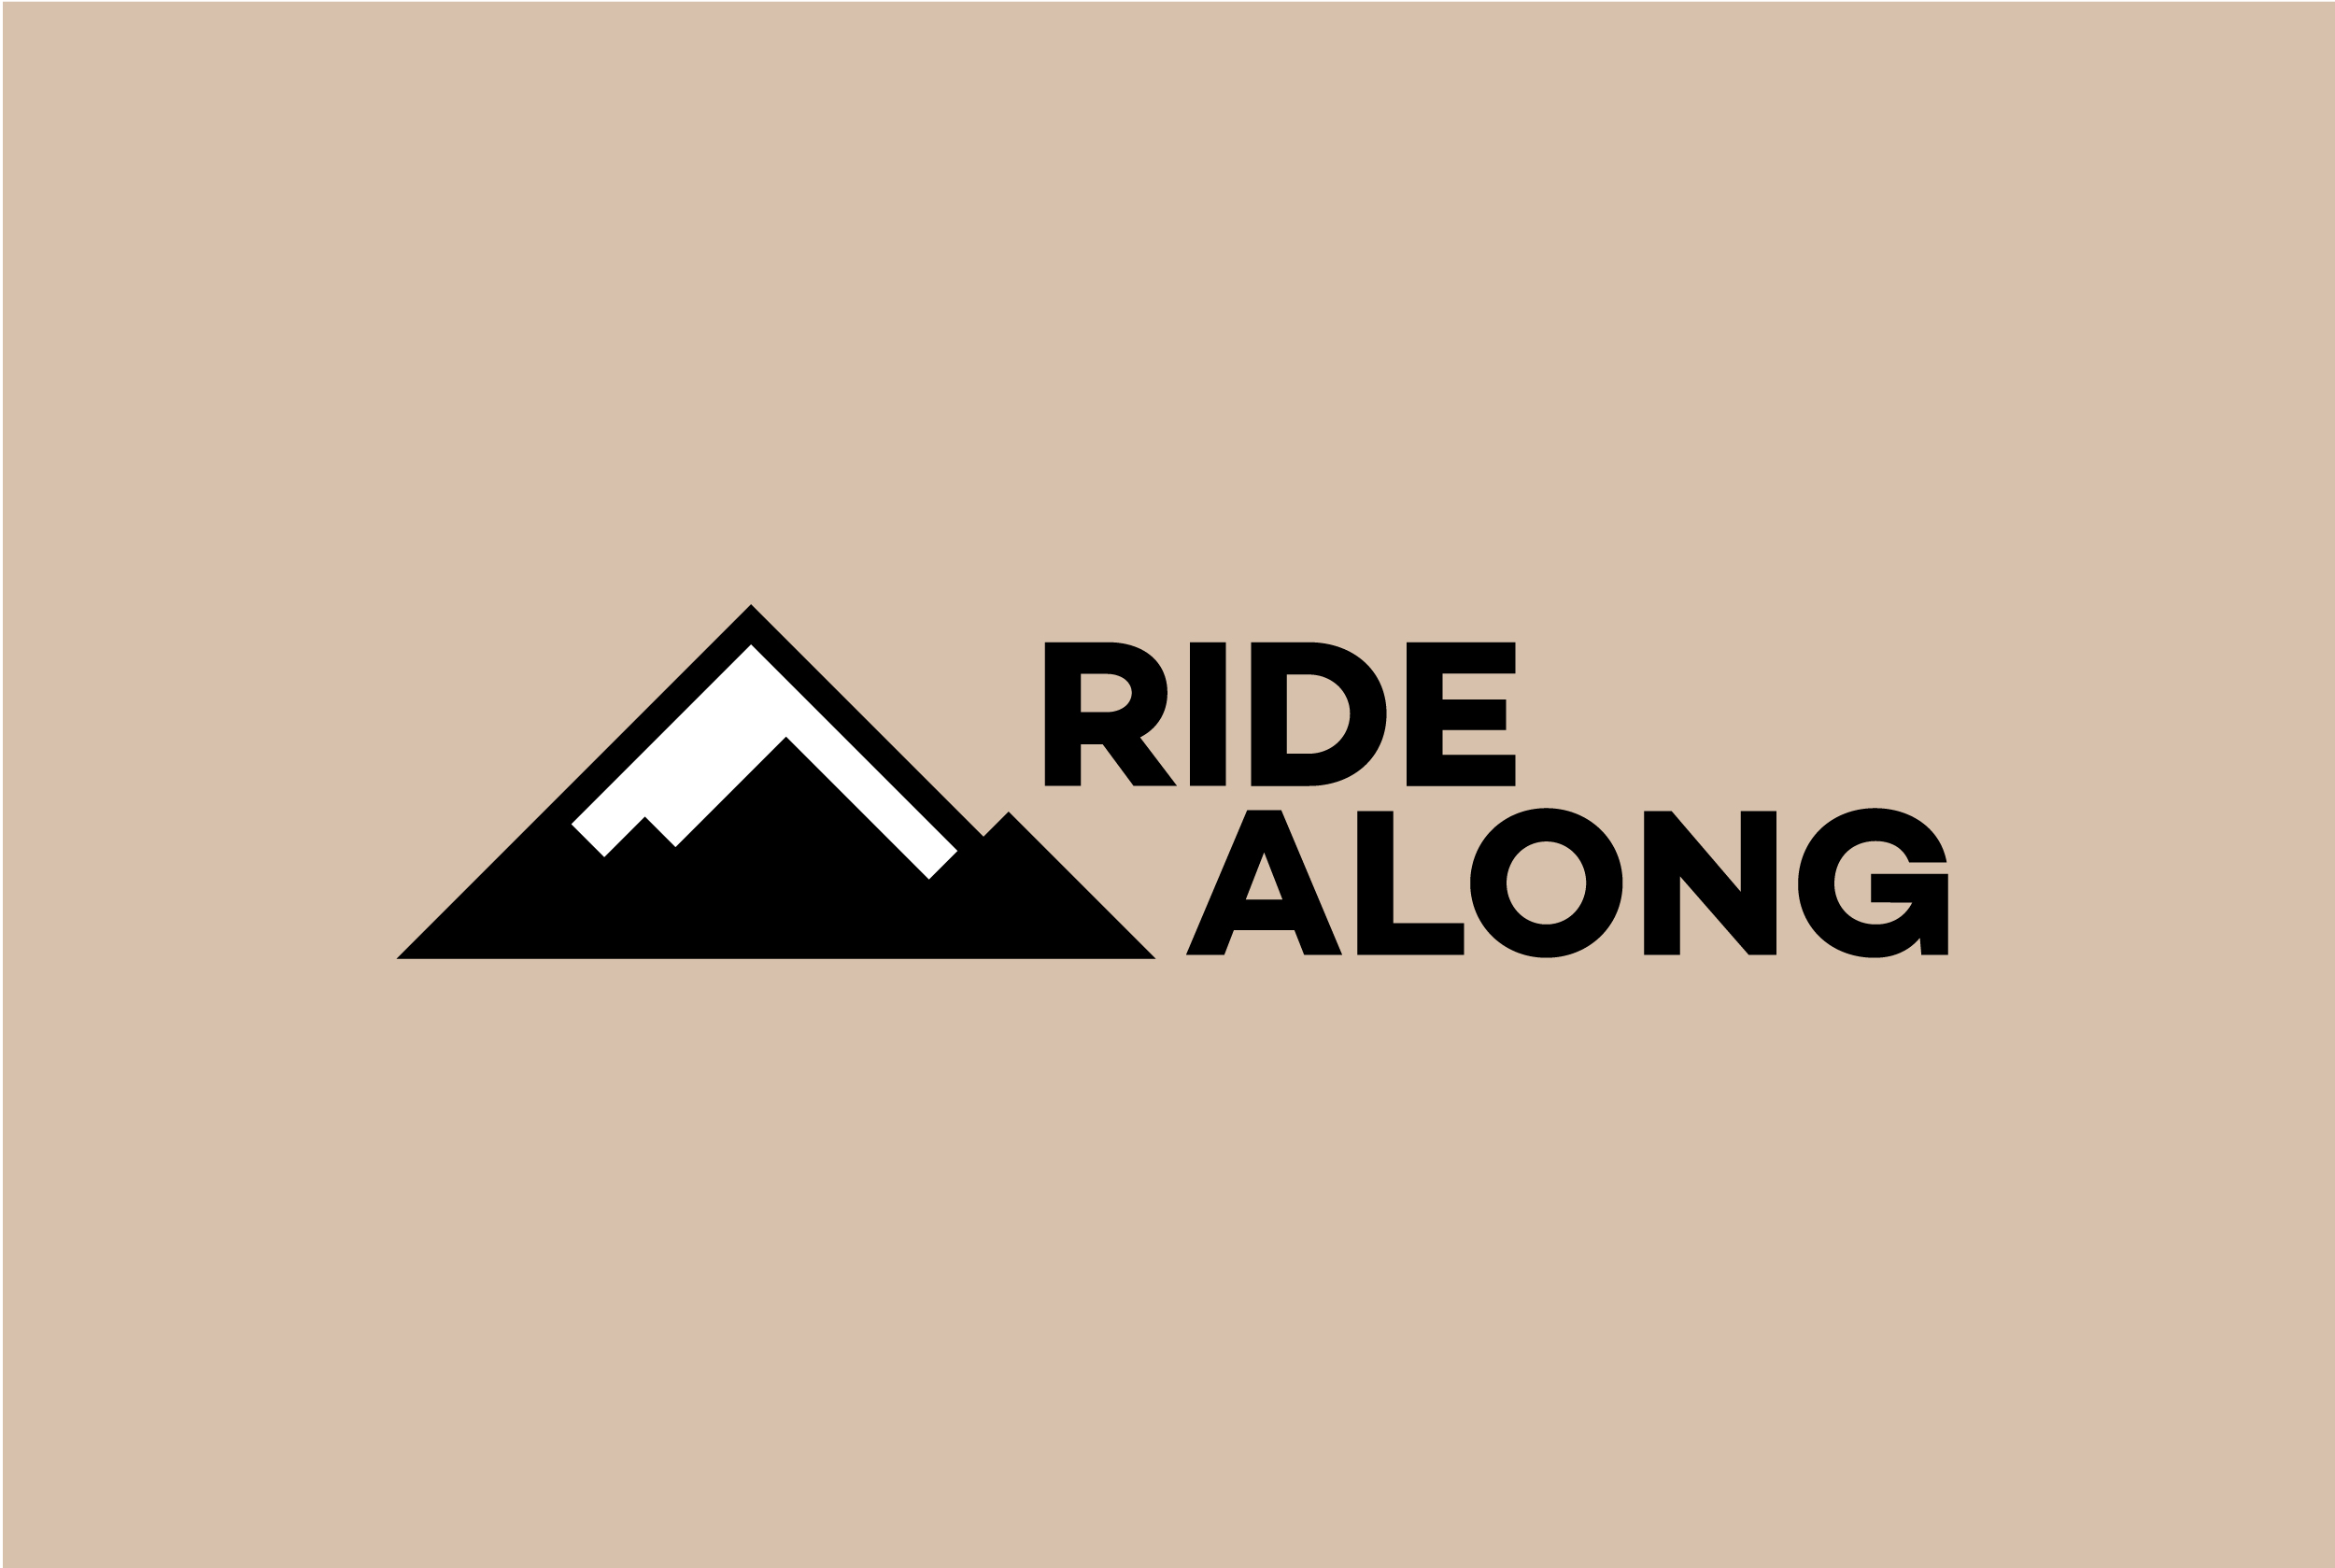 Ride Along Activities